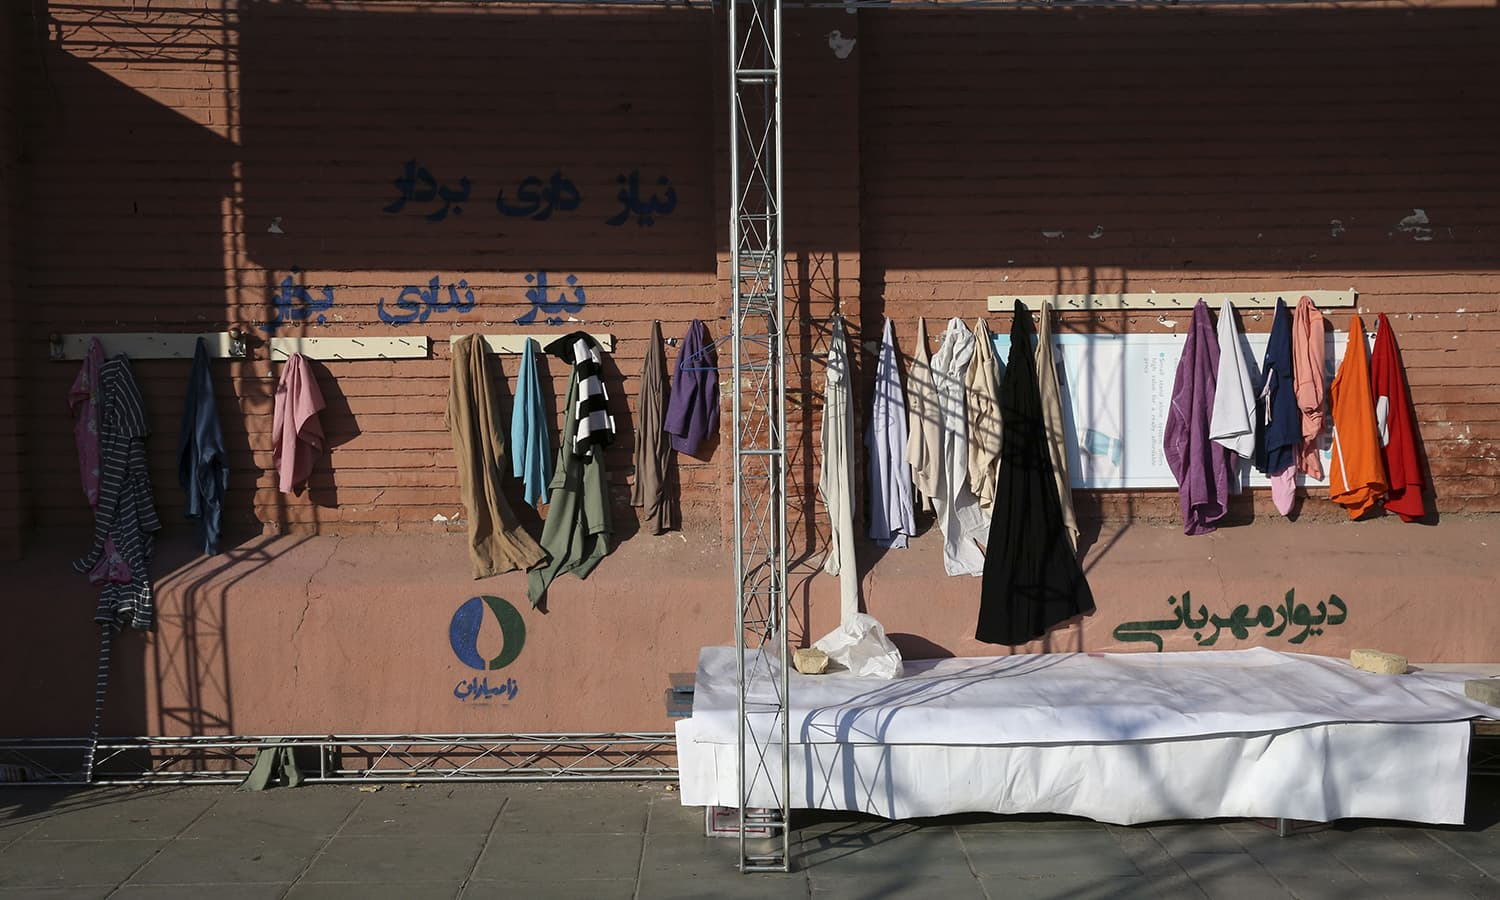 """In this Thursday, Jan. 7, 2016 photo, clothes hang on an outdoor charity wall with writing in Farsi at bottom right that reads, """"Wall of Kindness,"""" in downtown Tehran, Iran. ─ AP"""